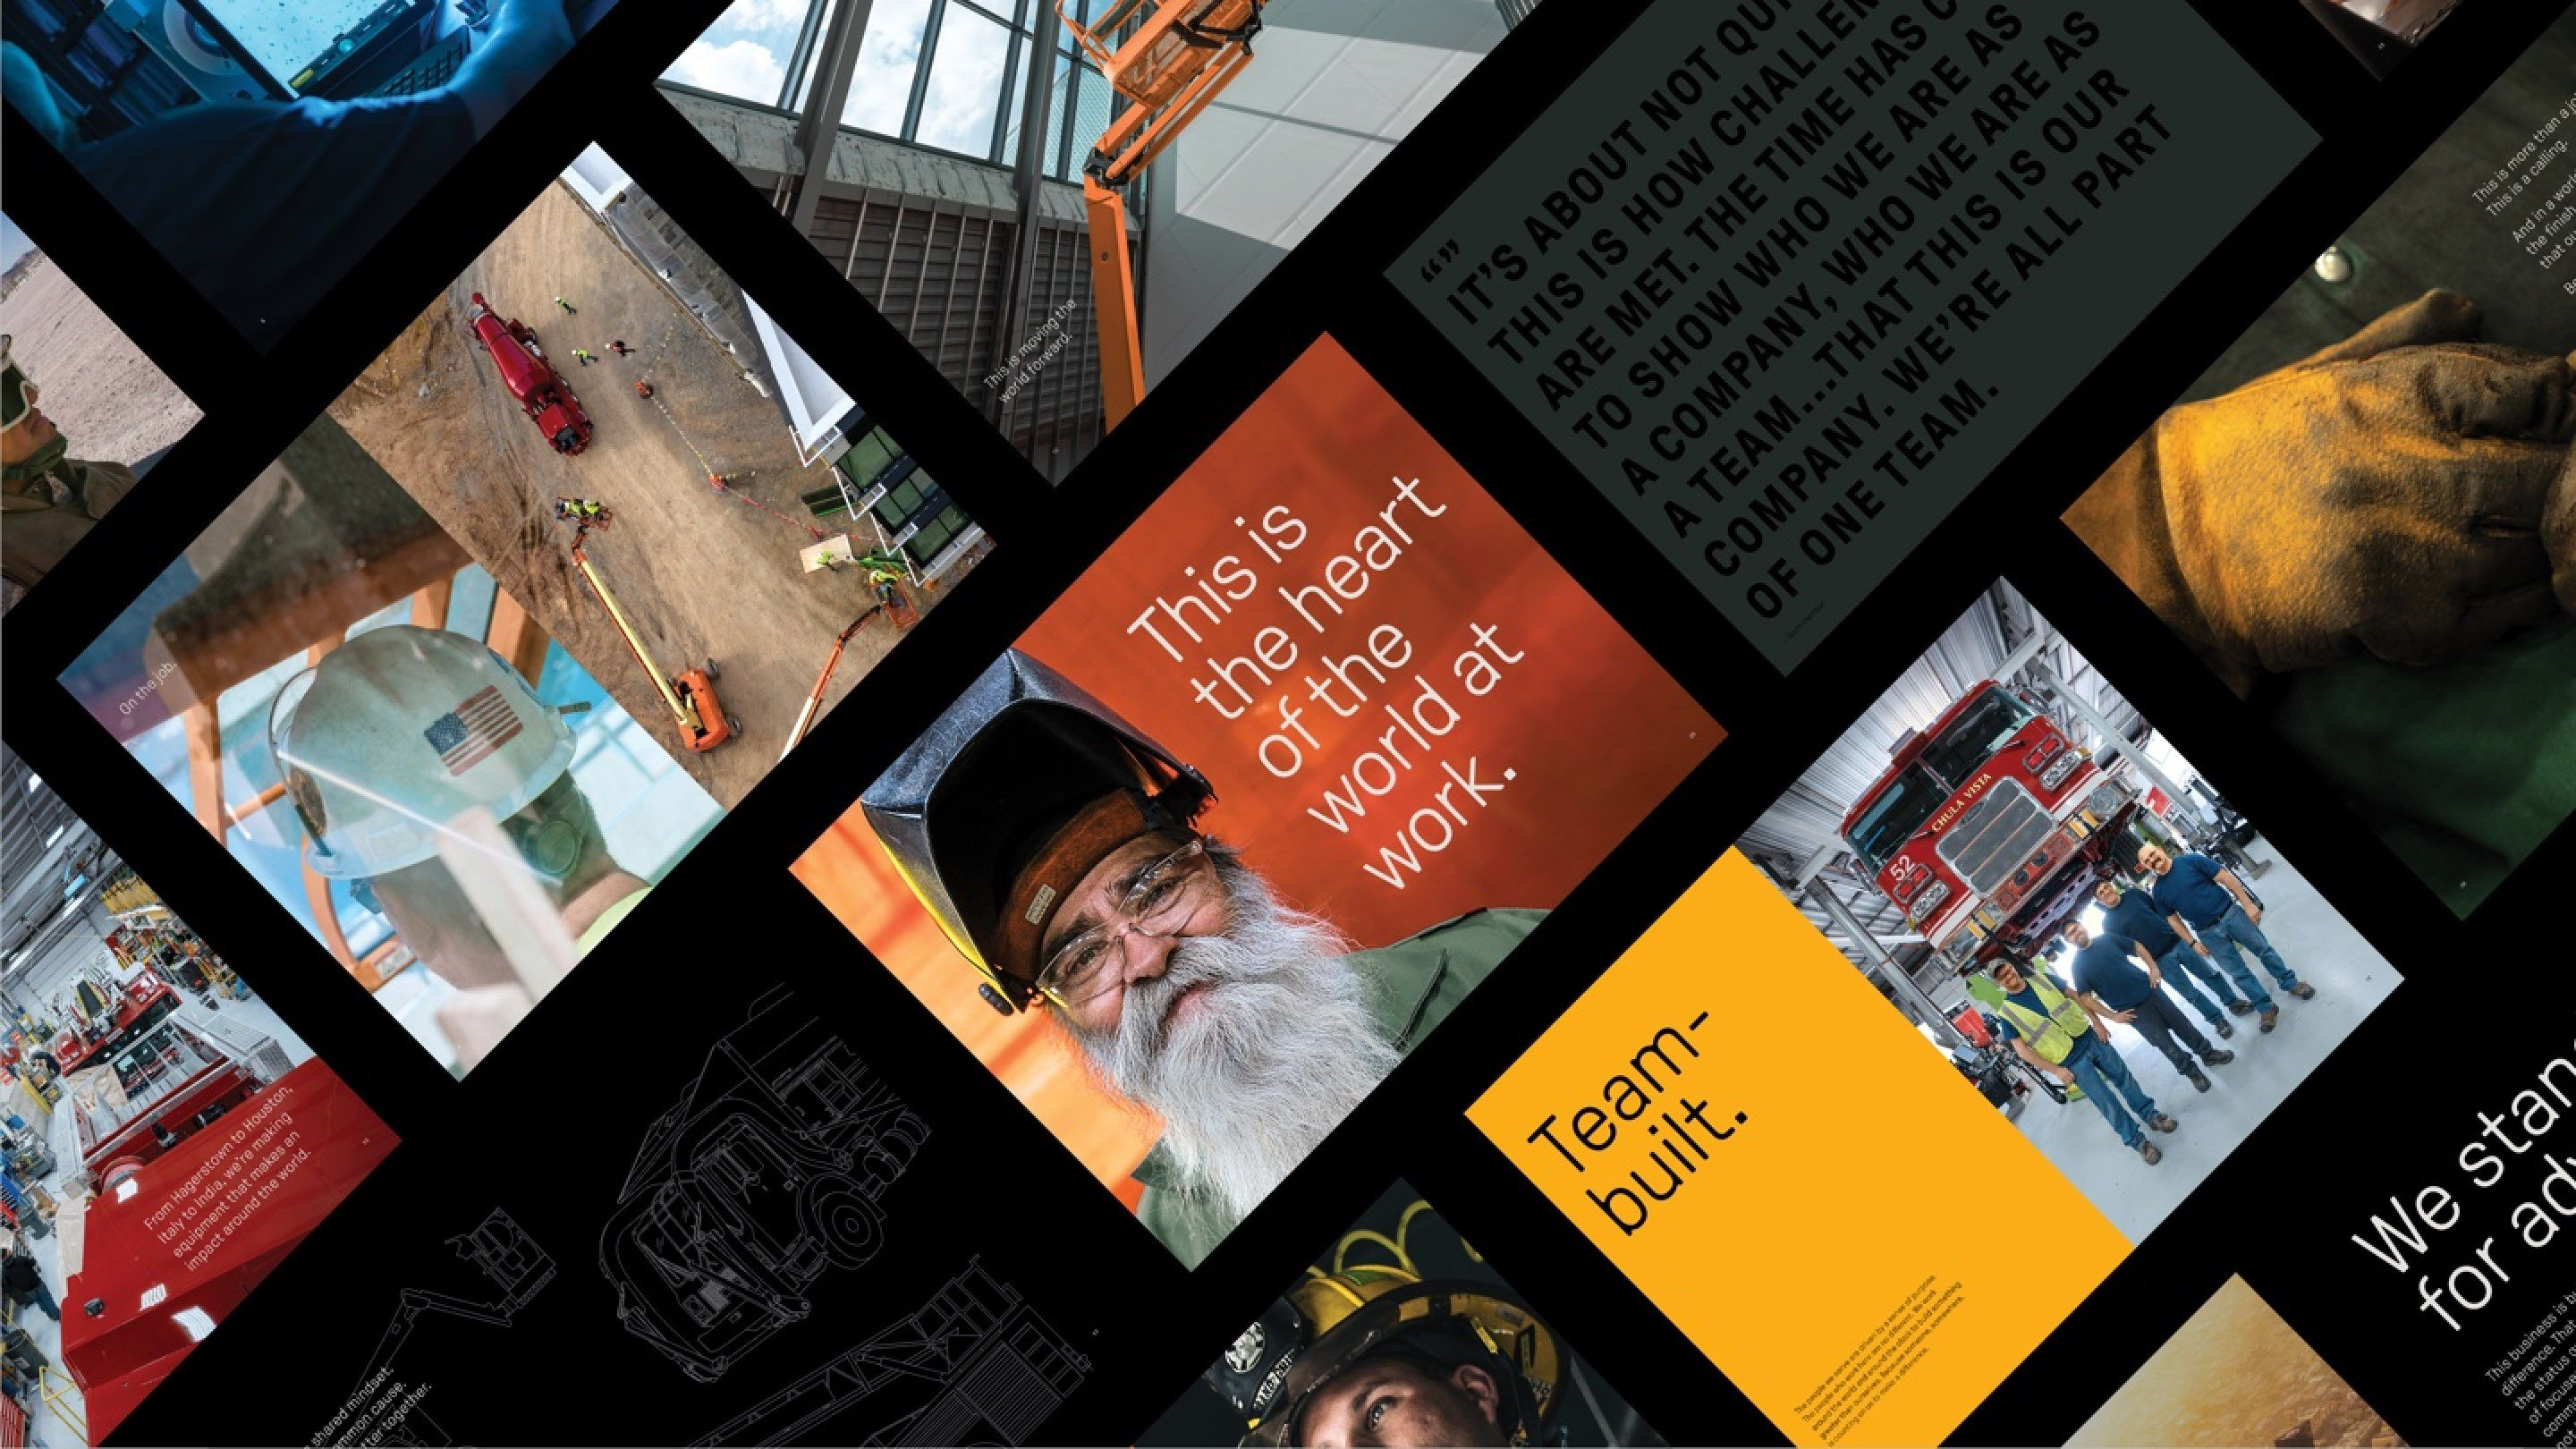 Oshkosh brand collage of messaging, imagery, and quotes